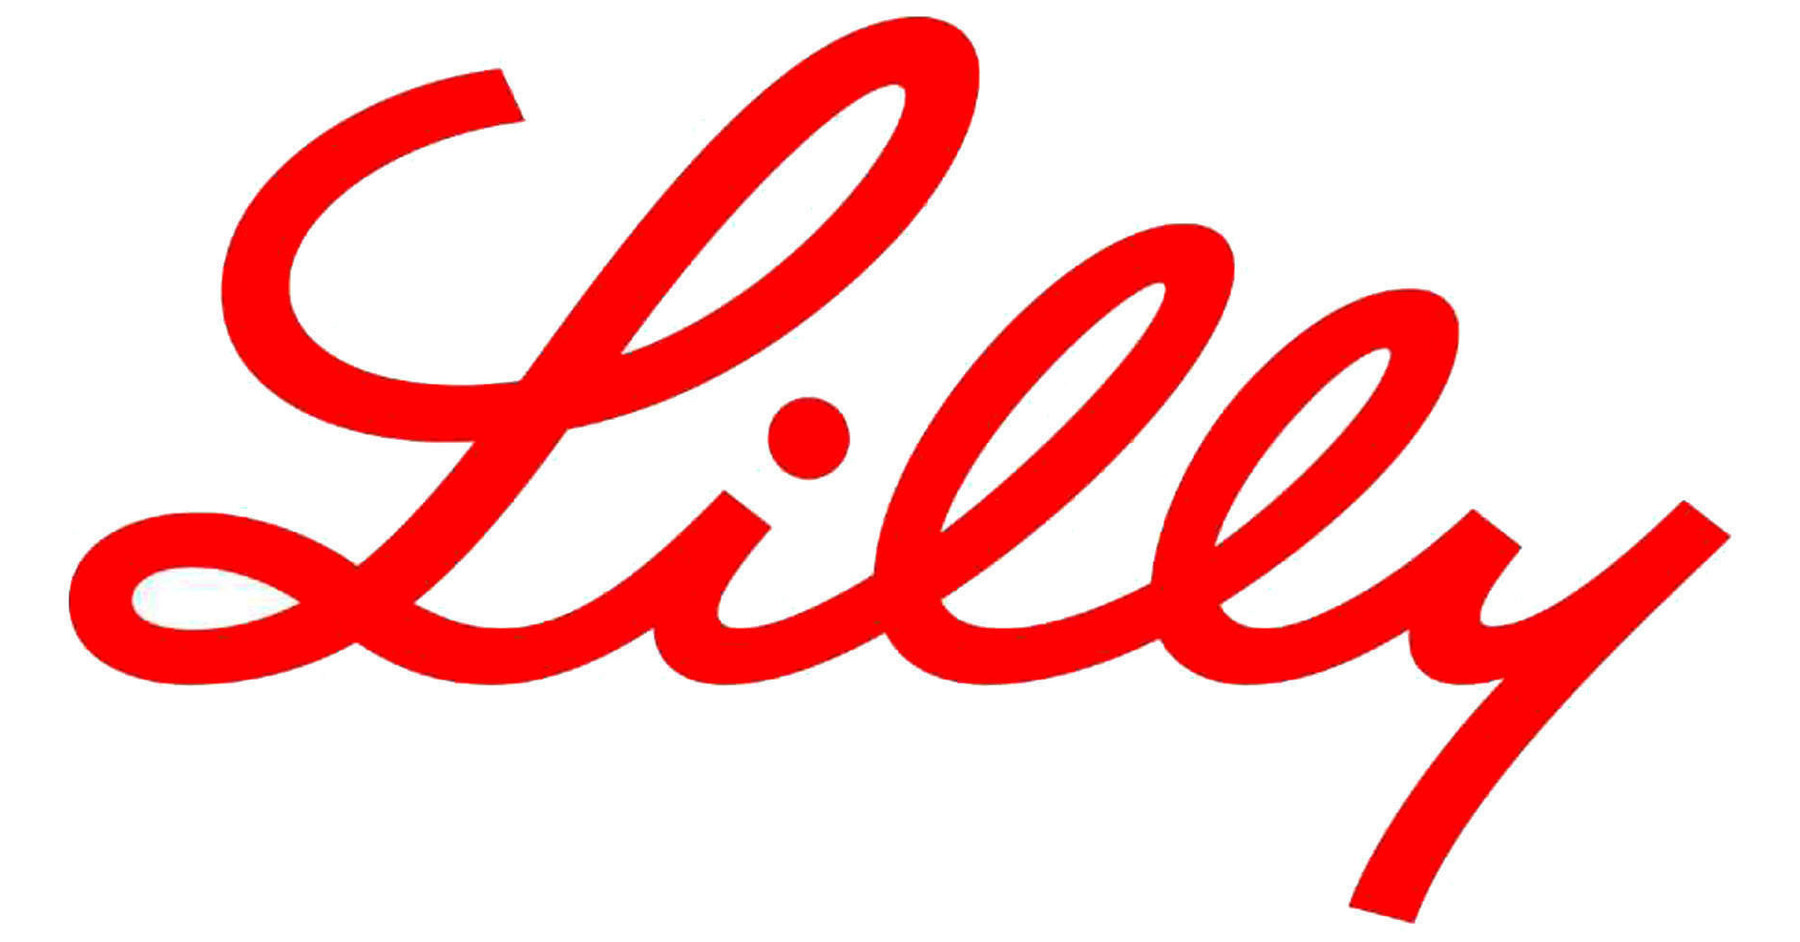 Lilly announces publication of analyses showing benefit of